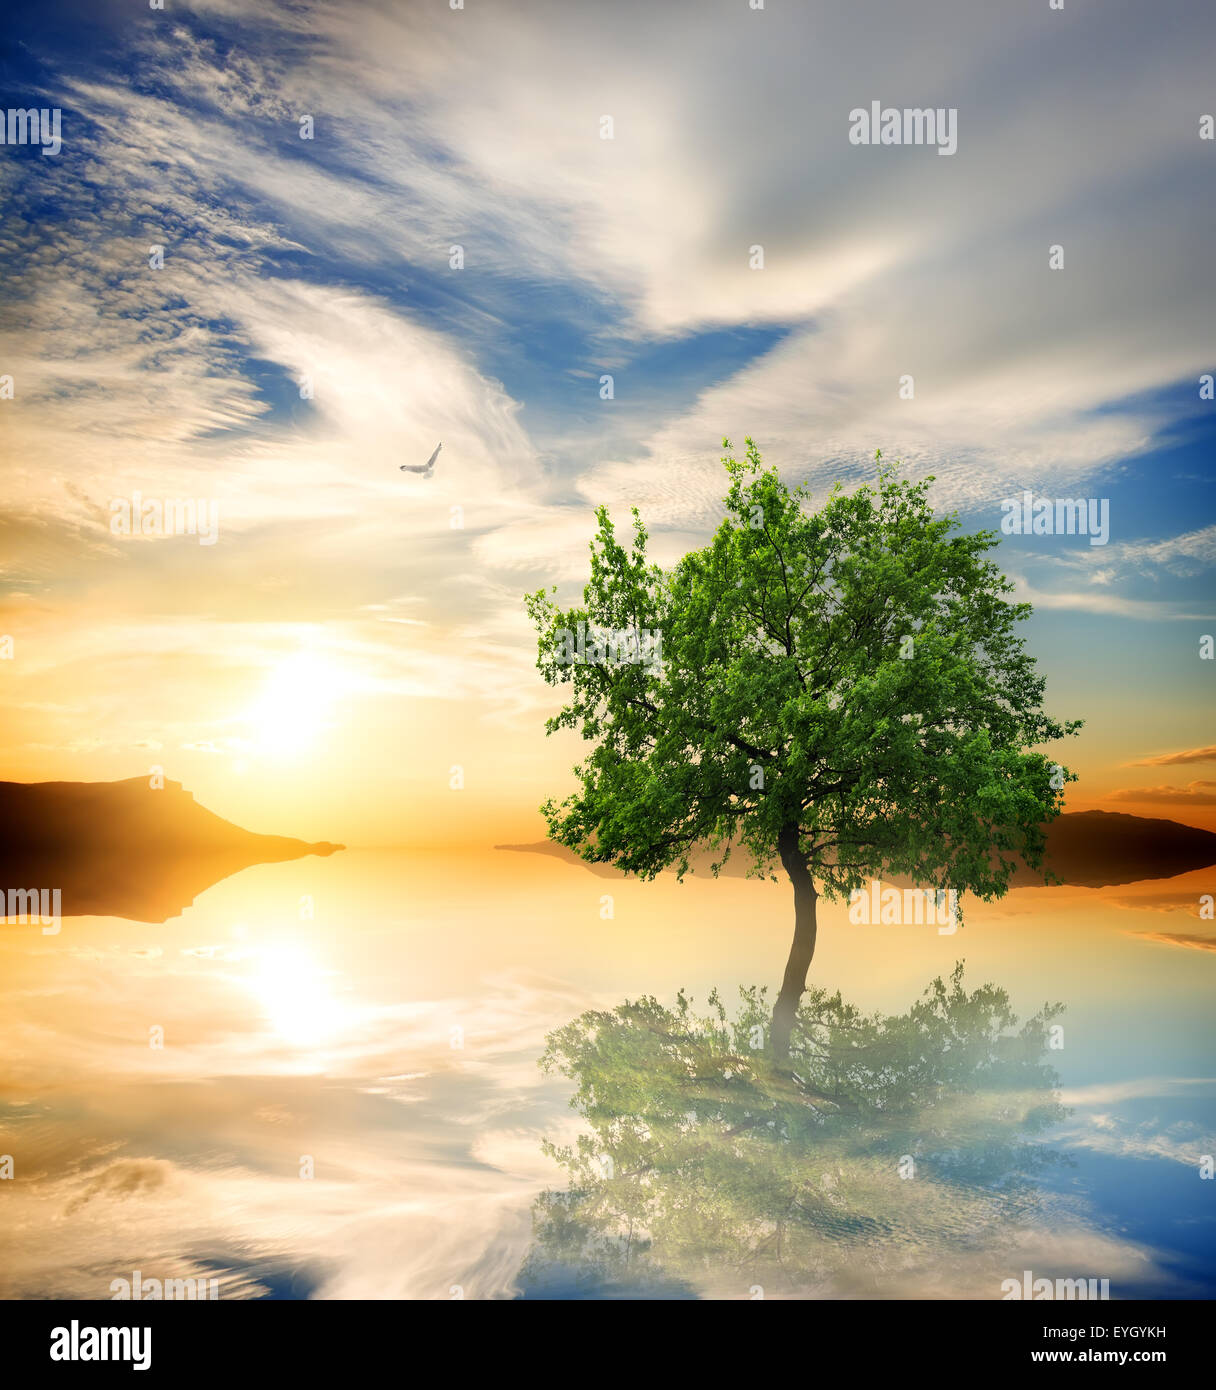 Green tree in the ocean at sunset - Stock Image